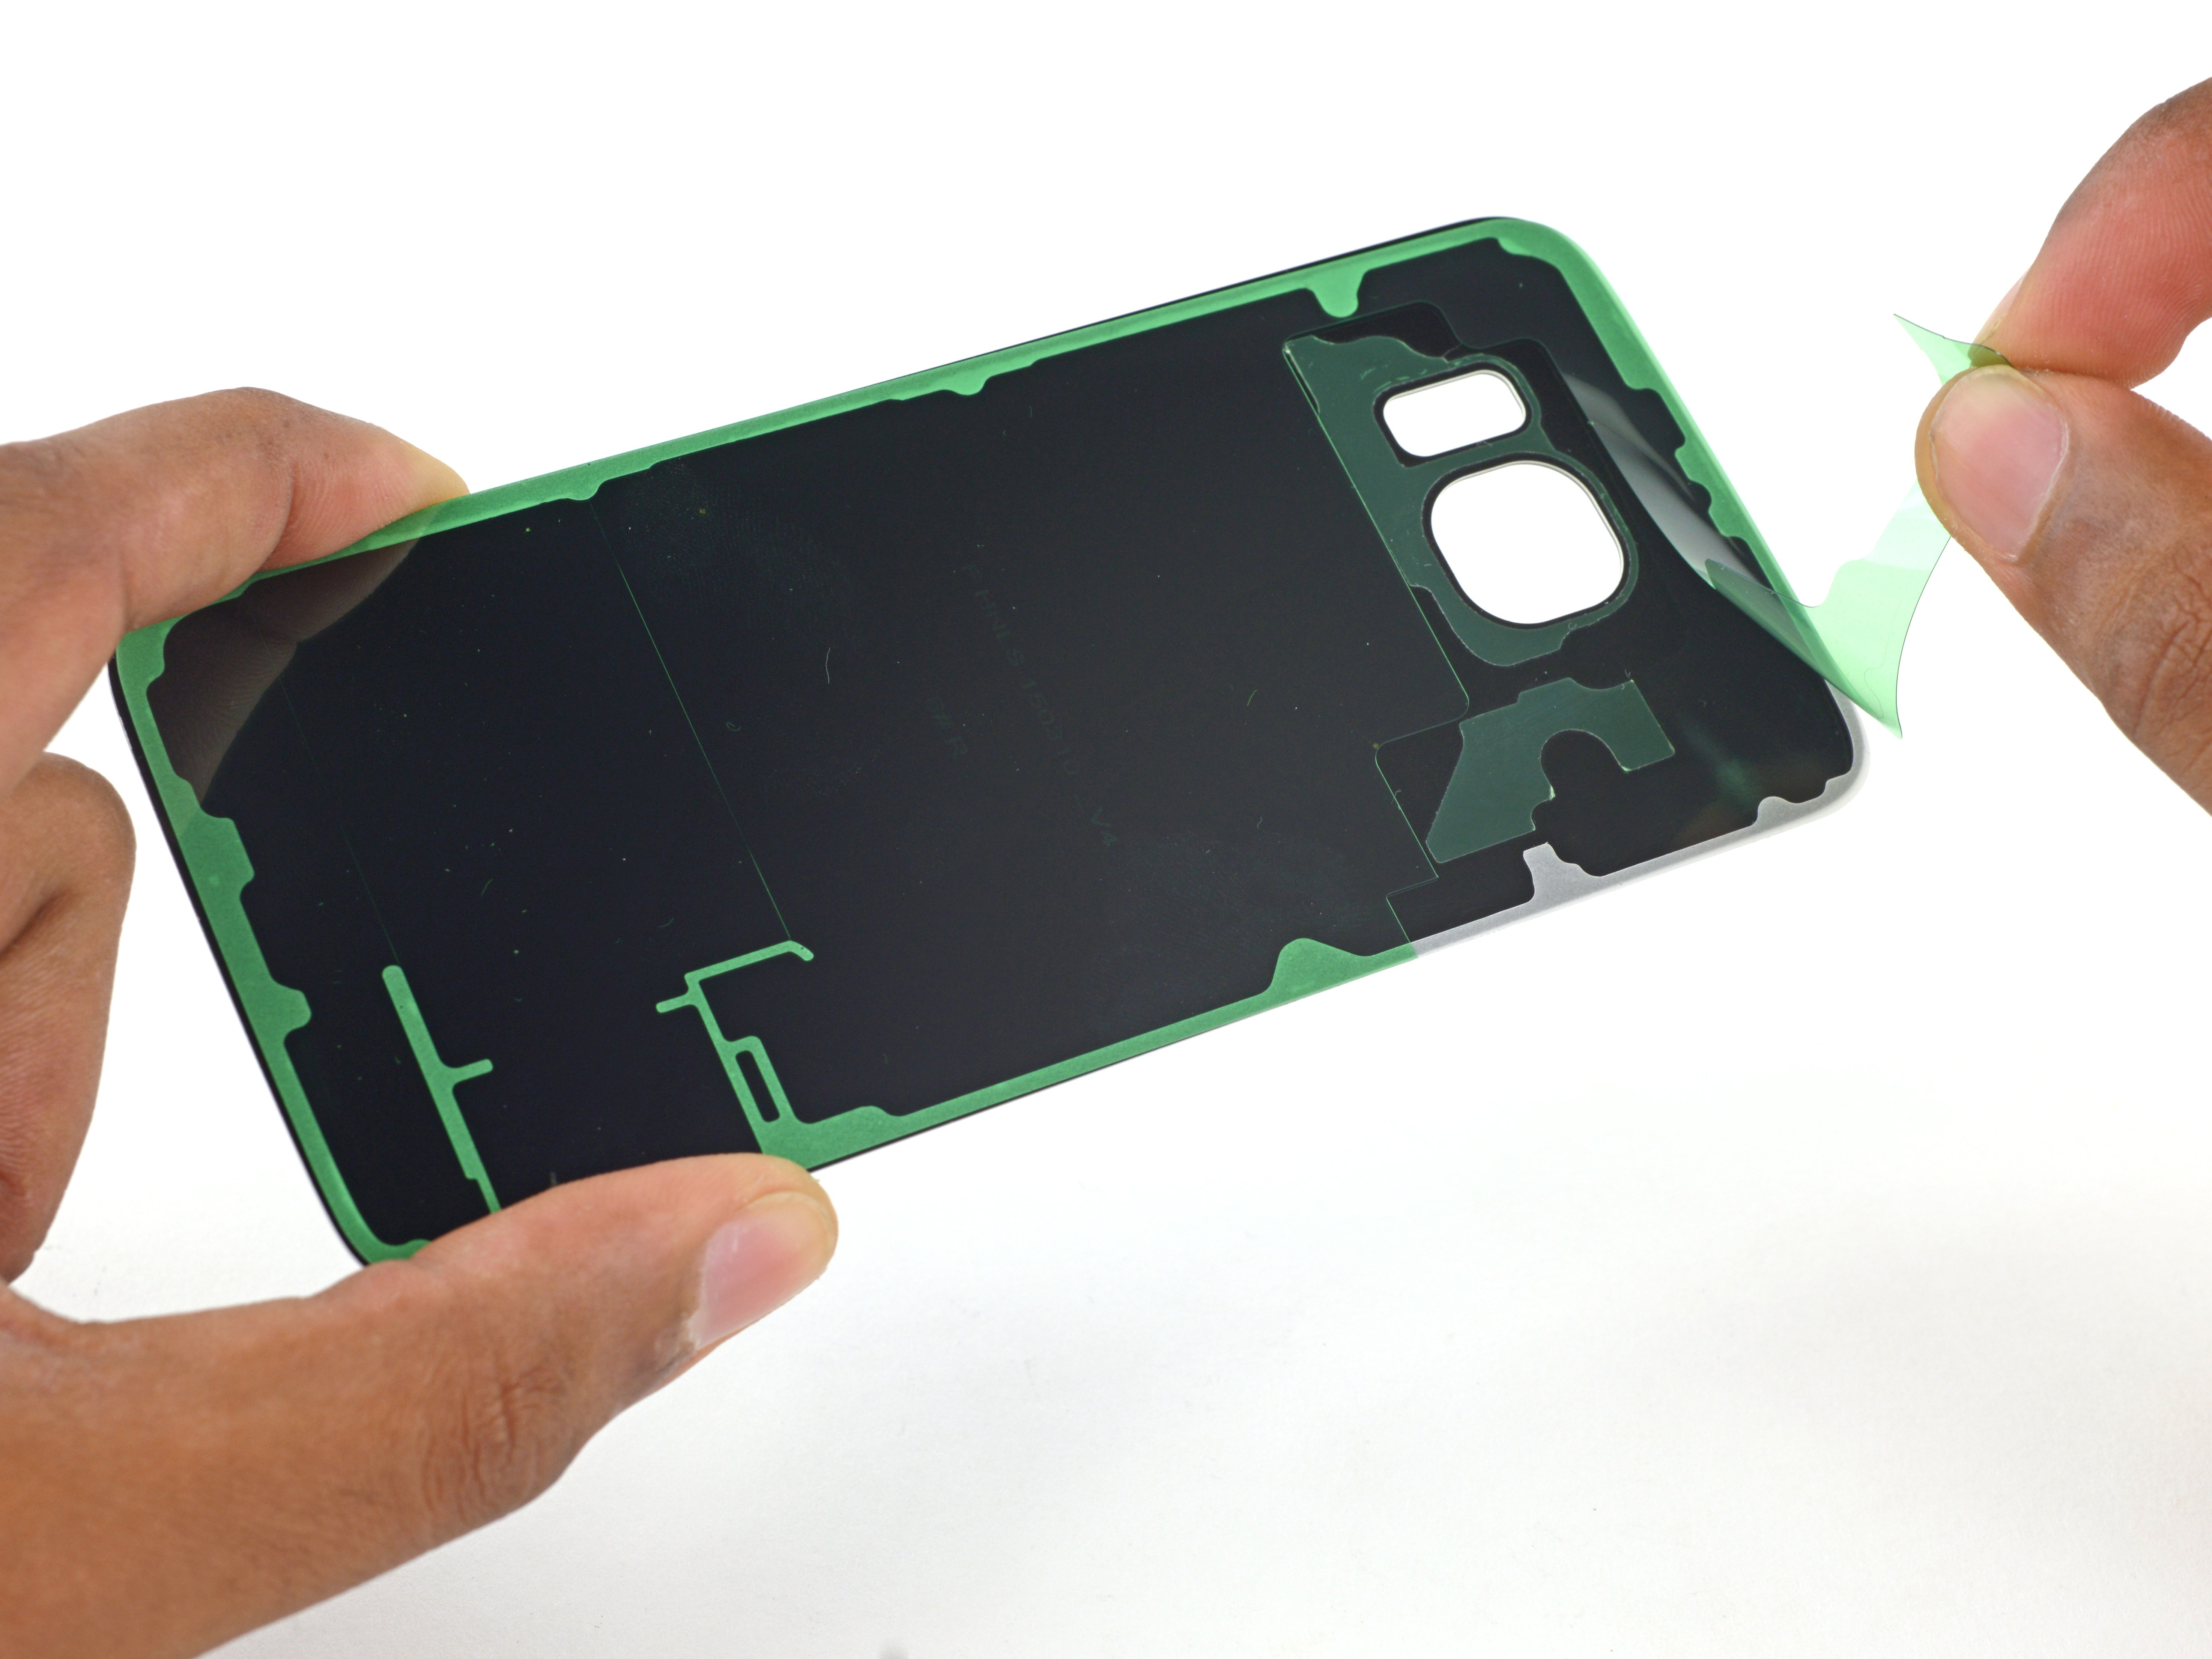 Samsung Galaxy S6 Rear Glass Adhesive Replacement - iFixit Repair Guide